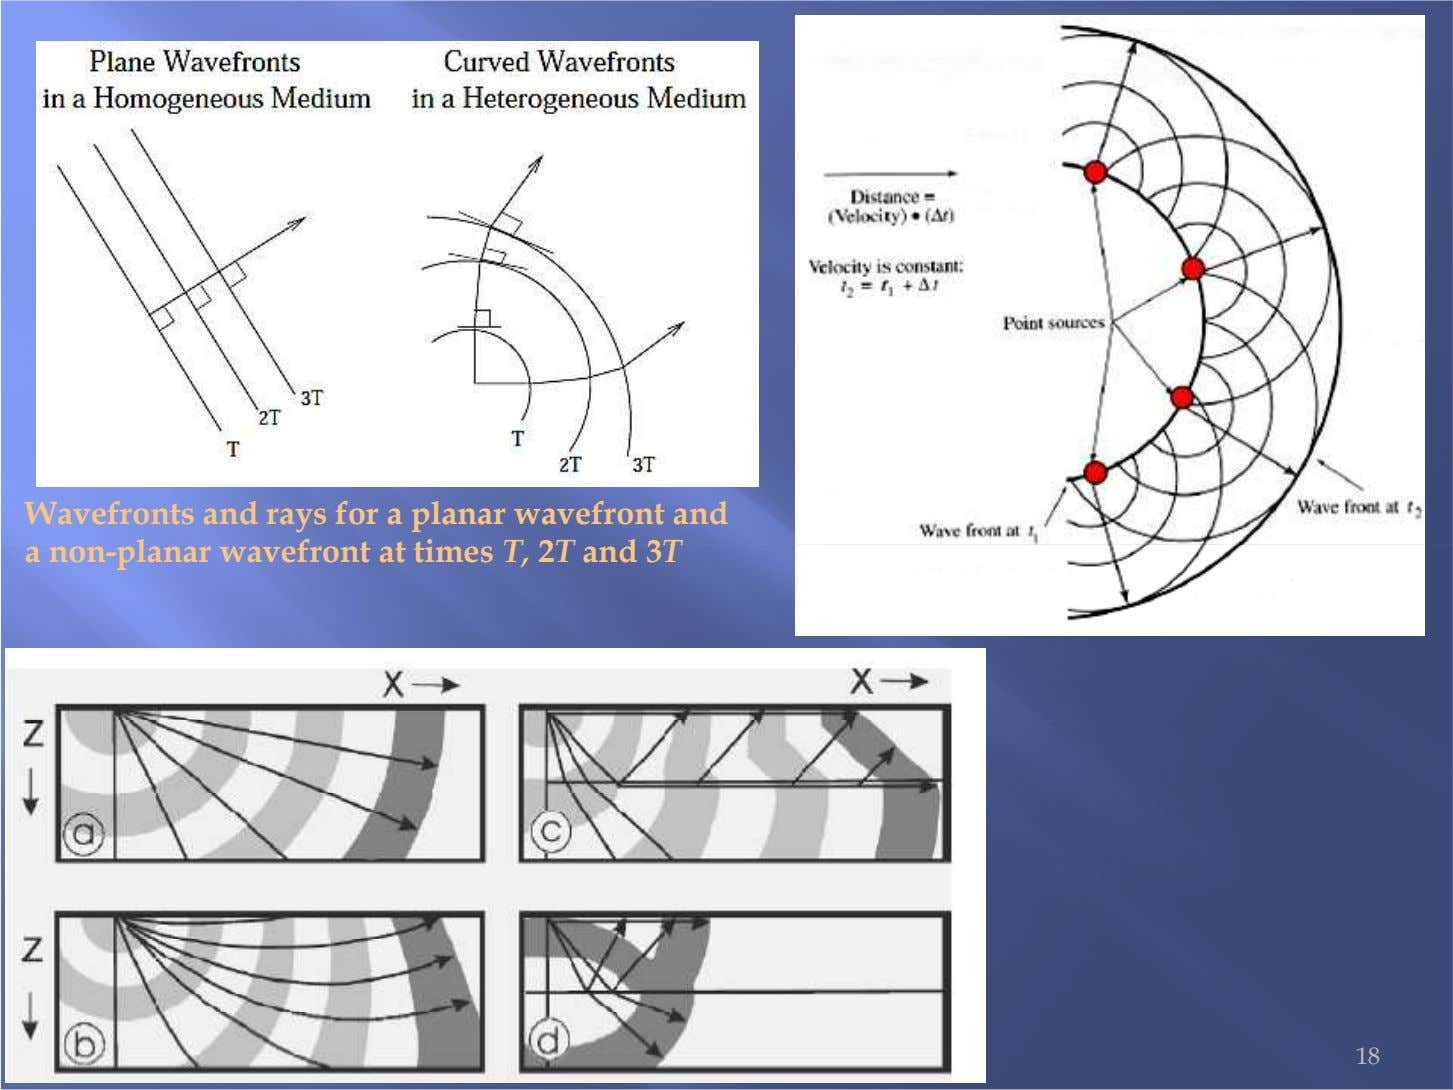 Wavefronts and rays for a planar wavefront and a non-planar wavefront at times T, 2T